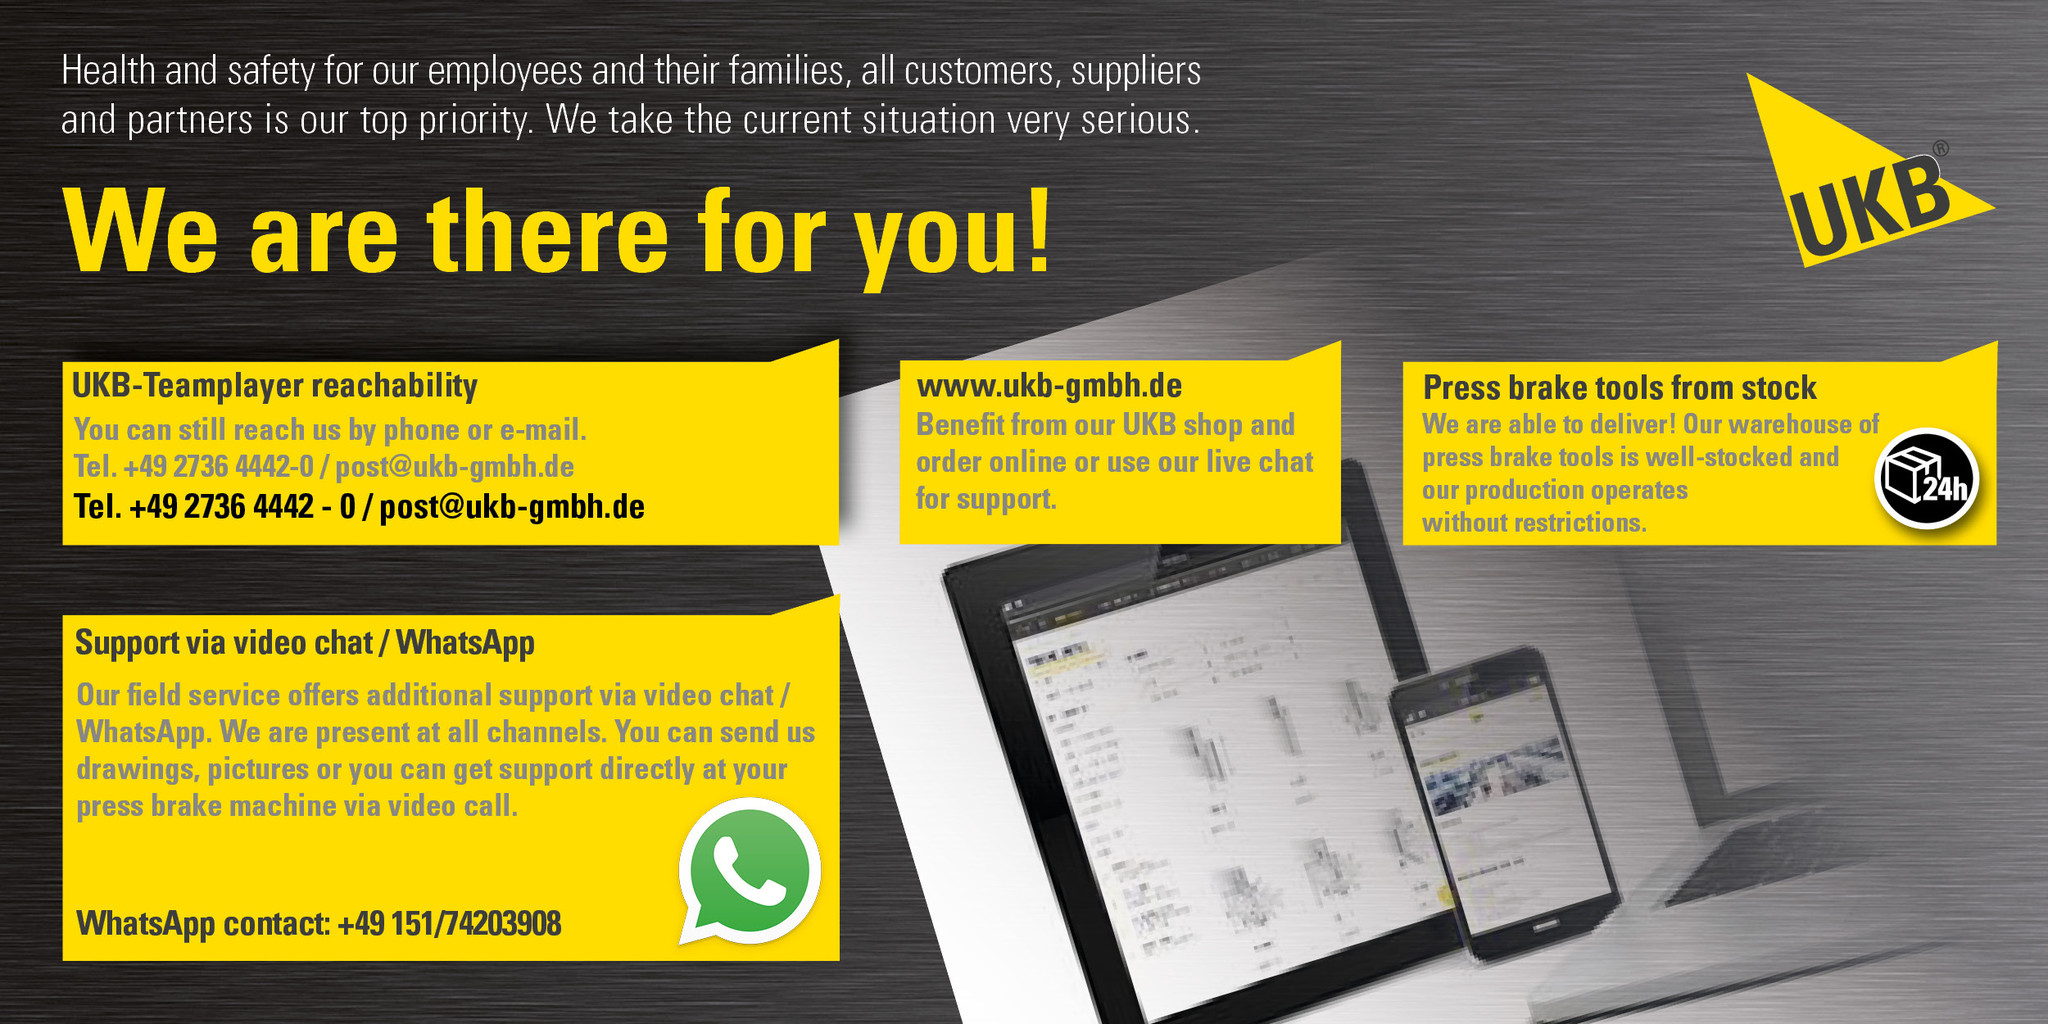 We are there for you!